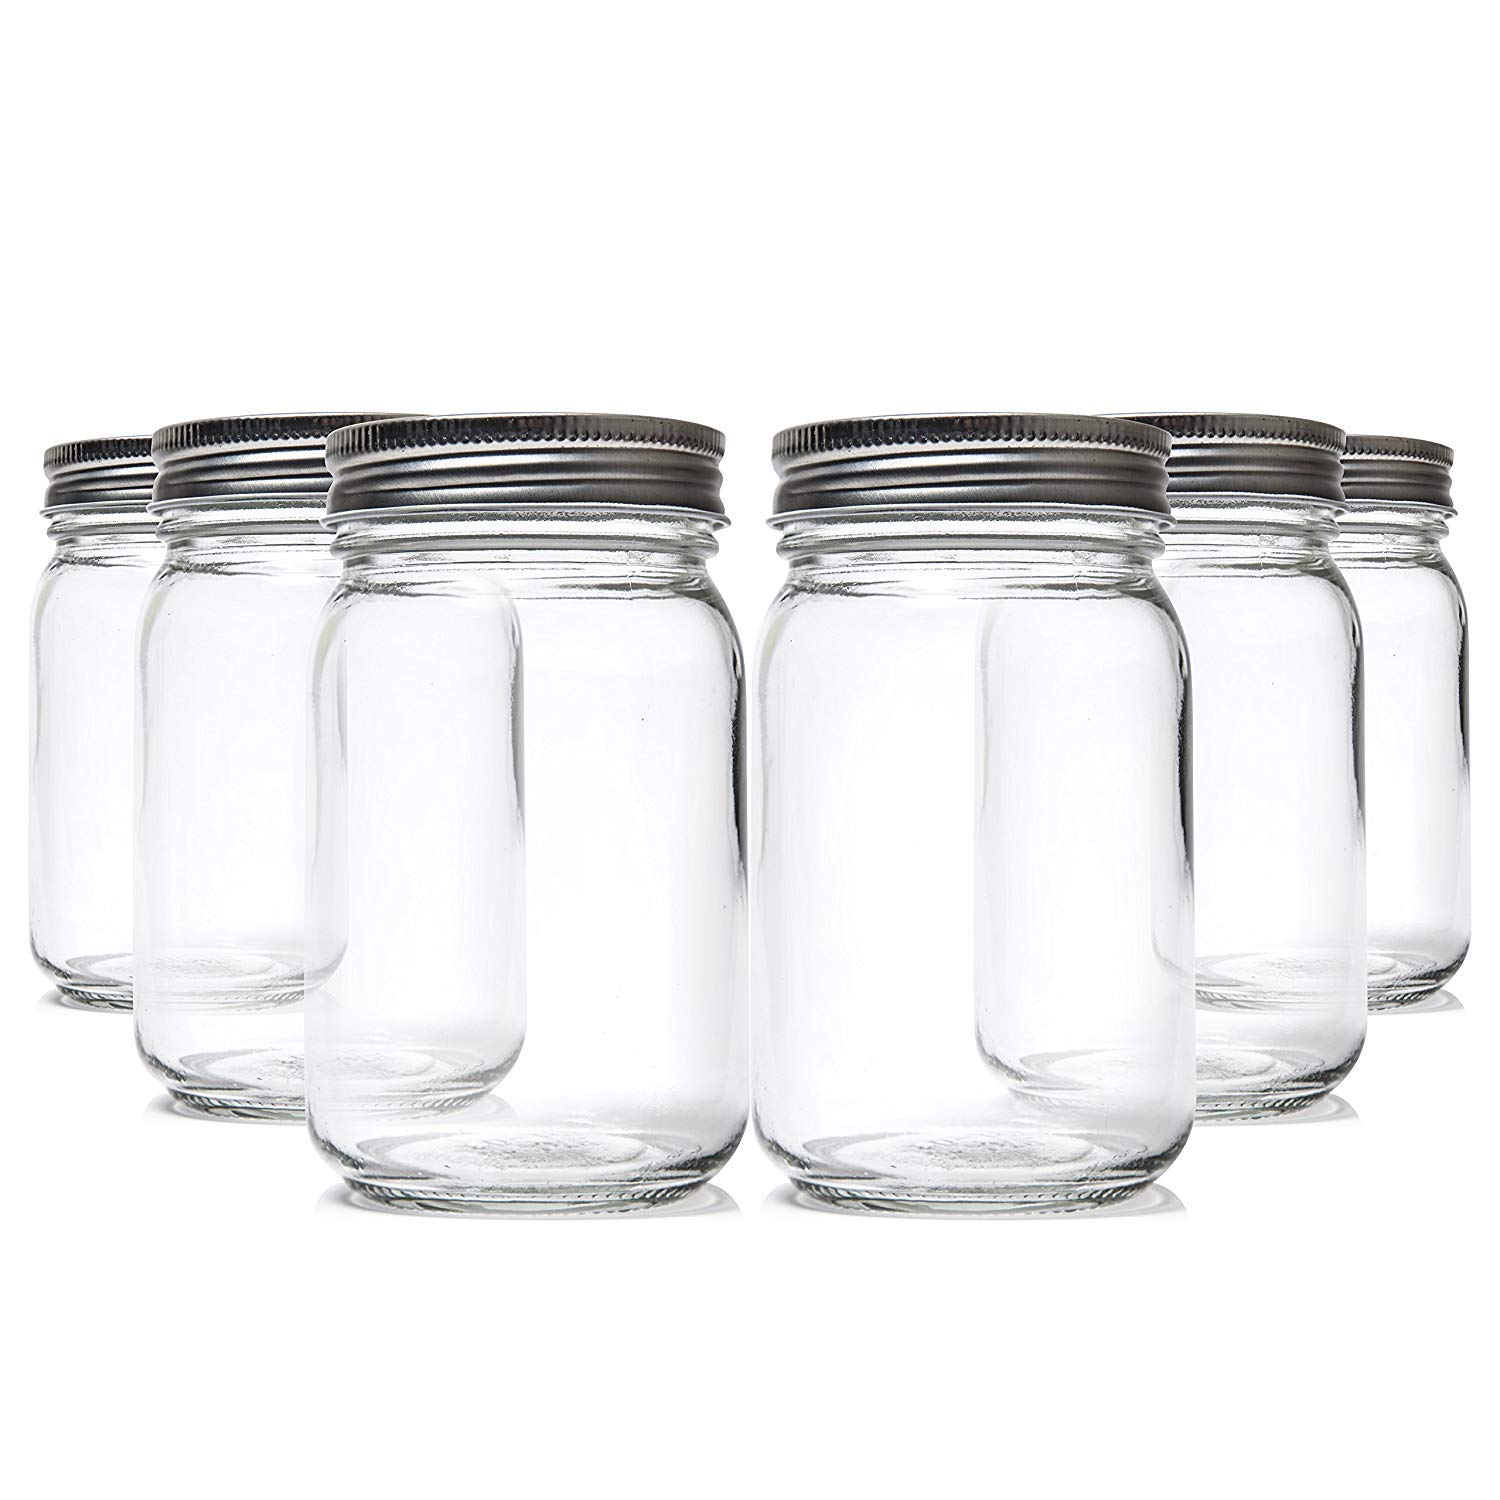 Easy-Busy Food Storage Regular Mouth Clear Glass Mason Pint (16 Oz) Canning Jars, With Lids and Bands, Ideal for Jelly, Fermenting, Kombucha, Apothecary uses, Dishwasher Safe, BPA Free, Set of 6.